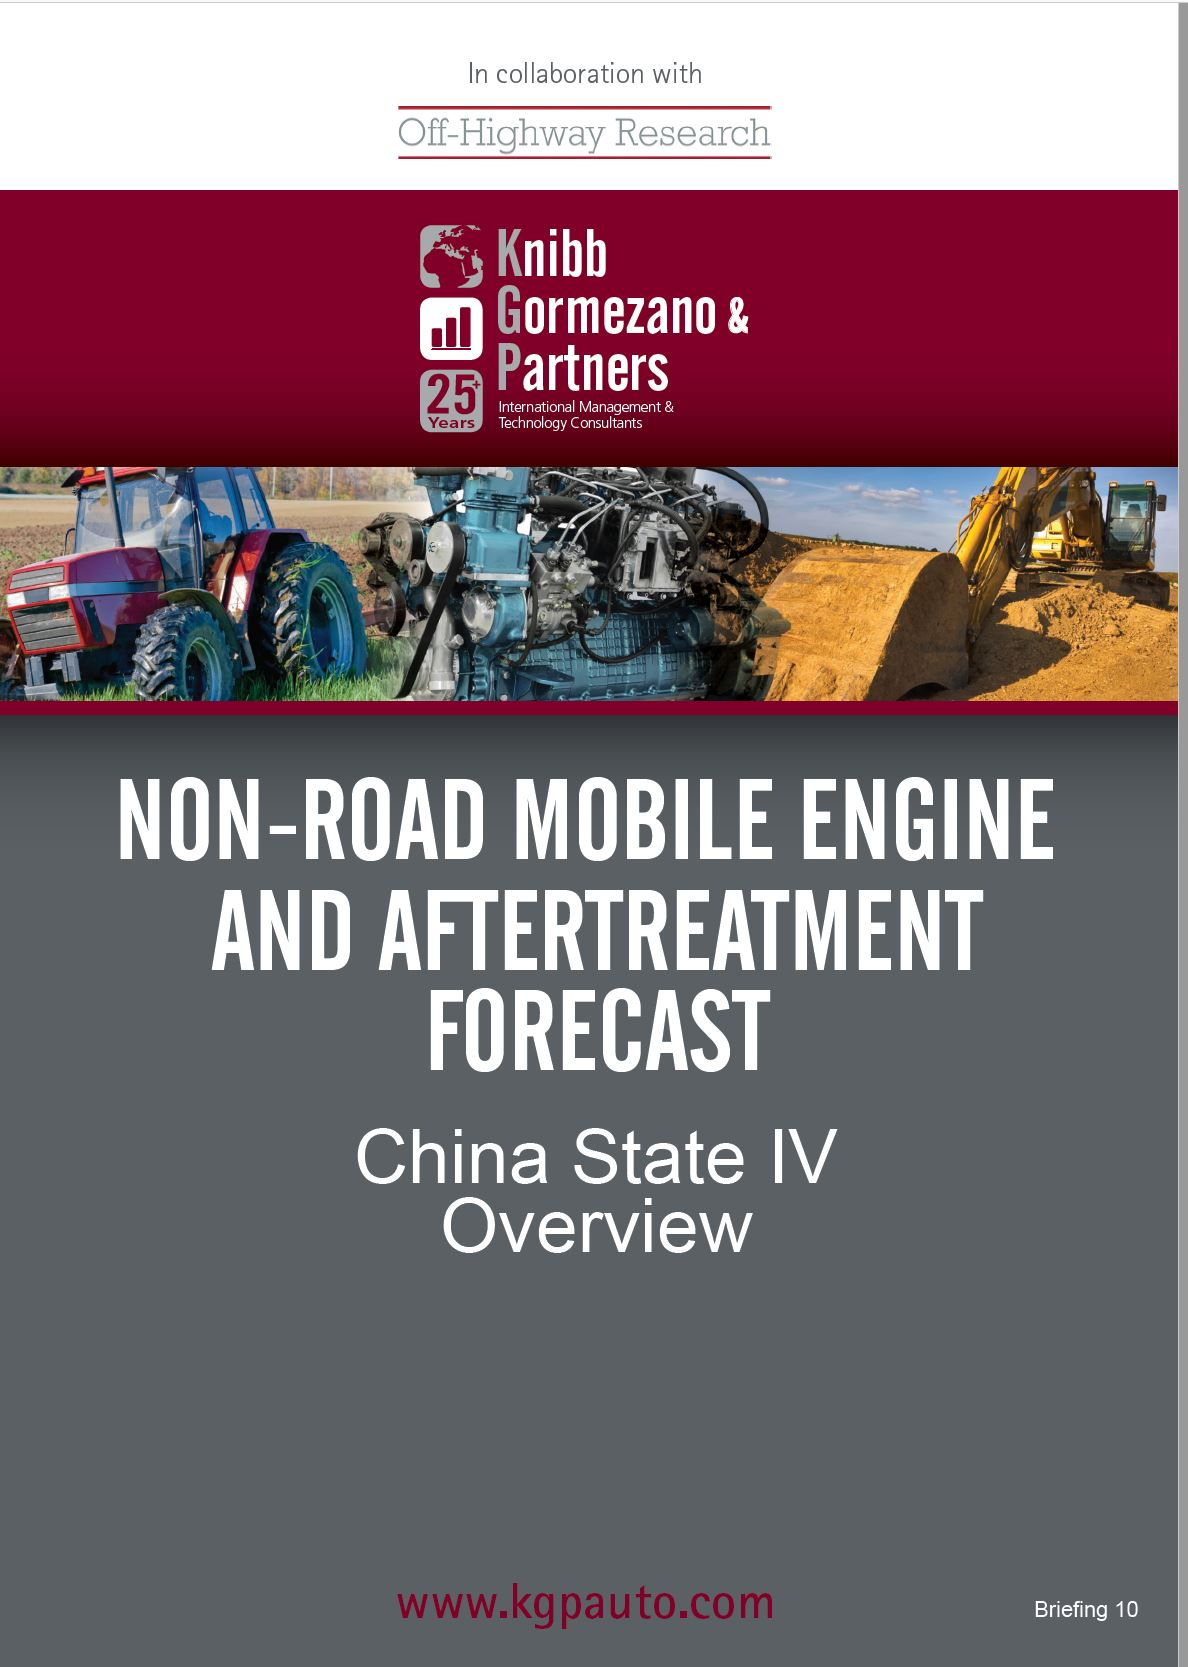 Briefing #10 - The Future of Diesel - Cleaning up China, the Global